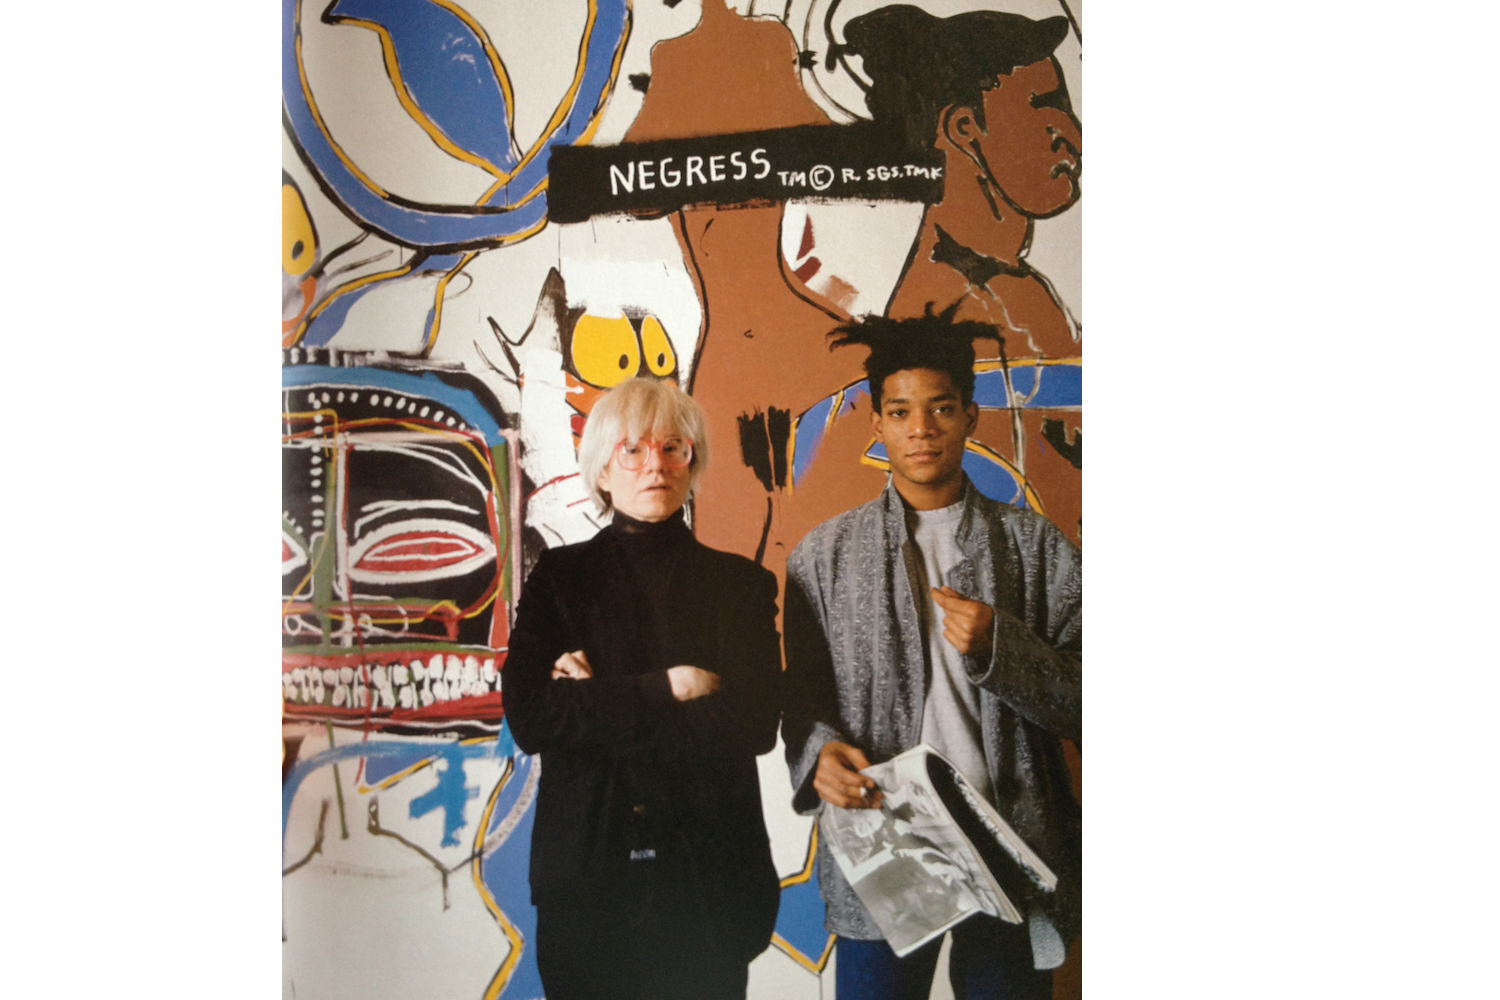 a review of the themes of basquiat a film by julian schnabel Reviews by john haber of the movie 'basquiat' by julian schnabel, 'i shot andy warhol' by mary harron, and warhol's 'rorschach' paintings.